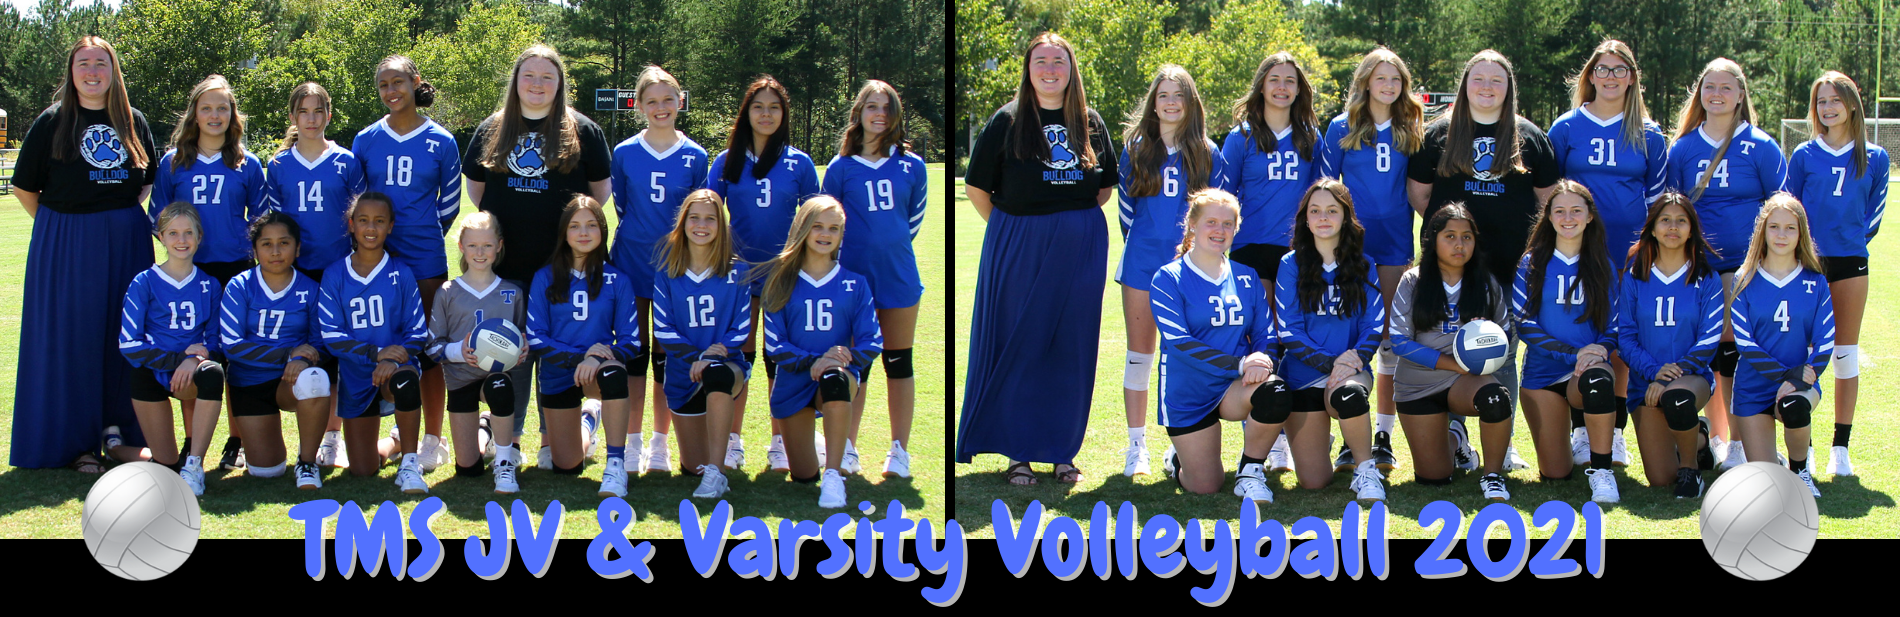 Slide 4: Volleyball Team Picture